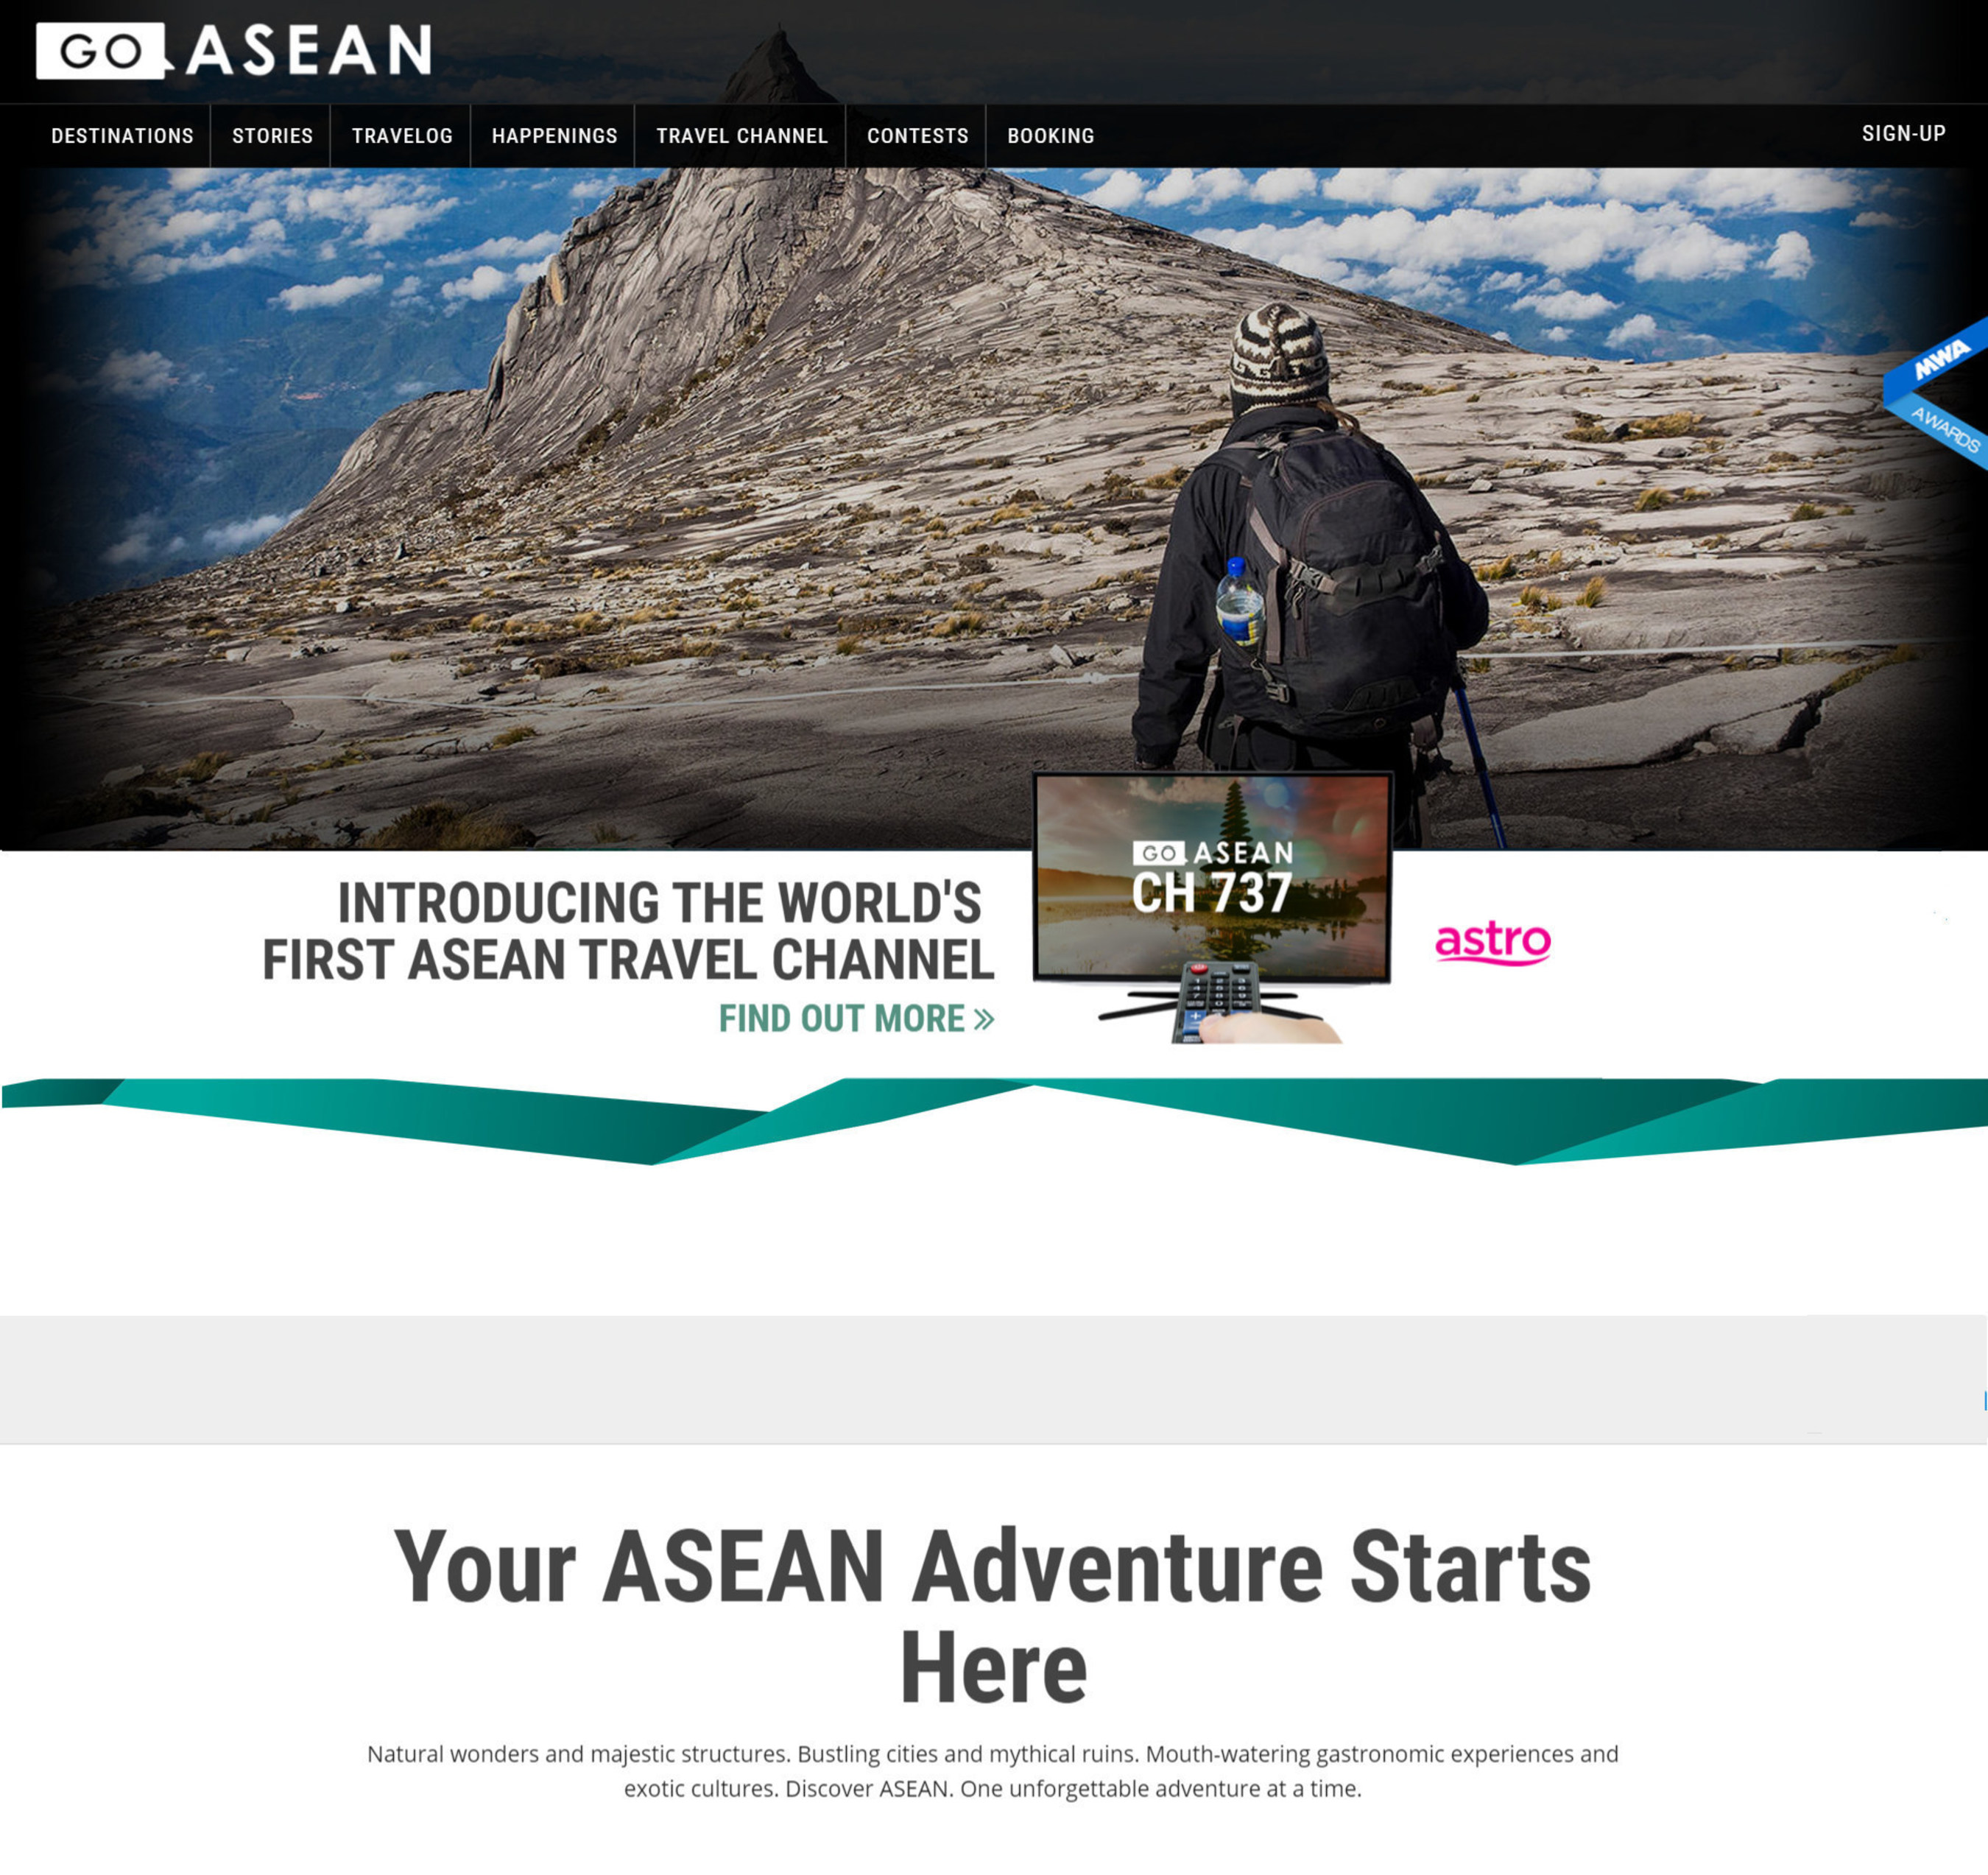 GOASEAN At London World Travel Market Offers Travellers A Tantalising View Of Southeast Asia